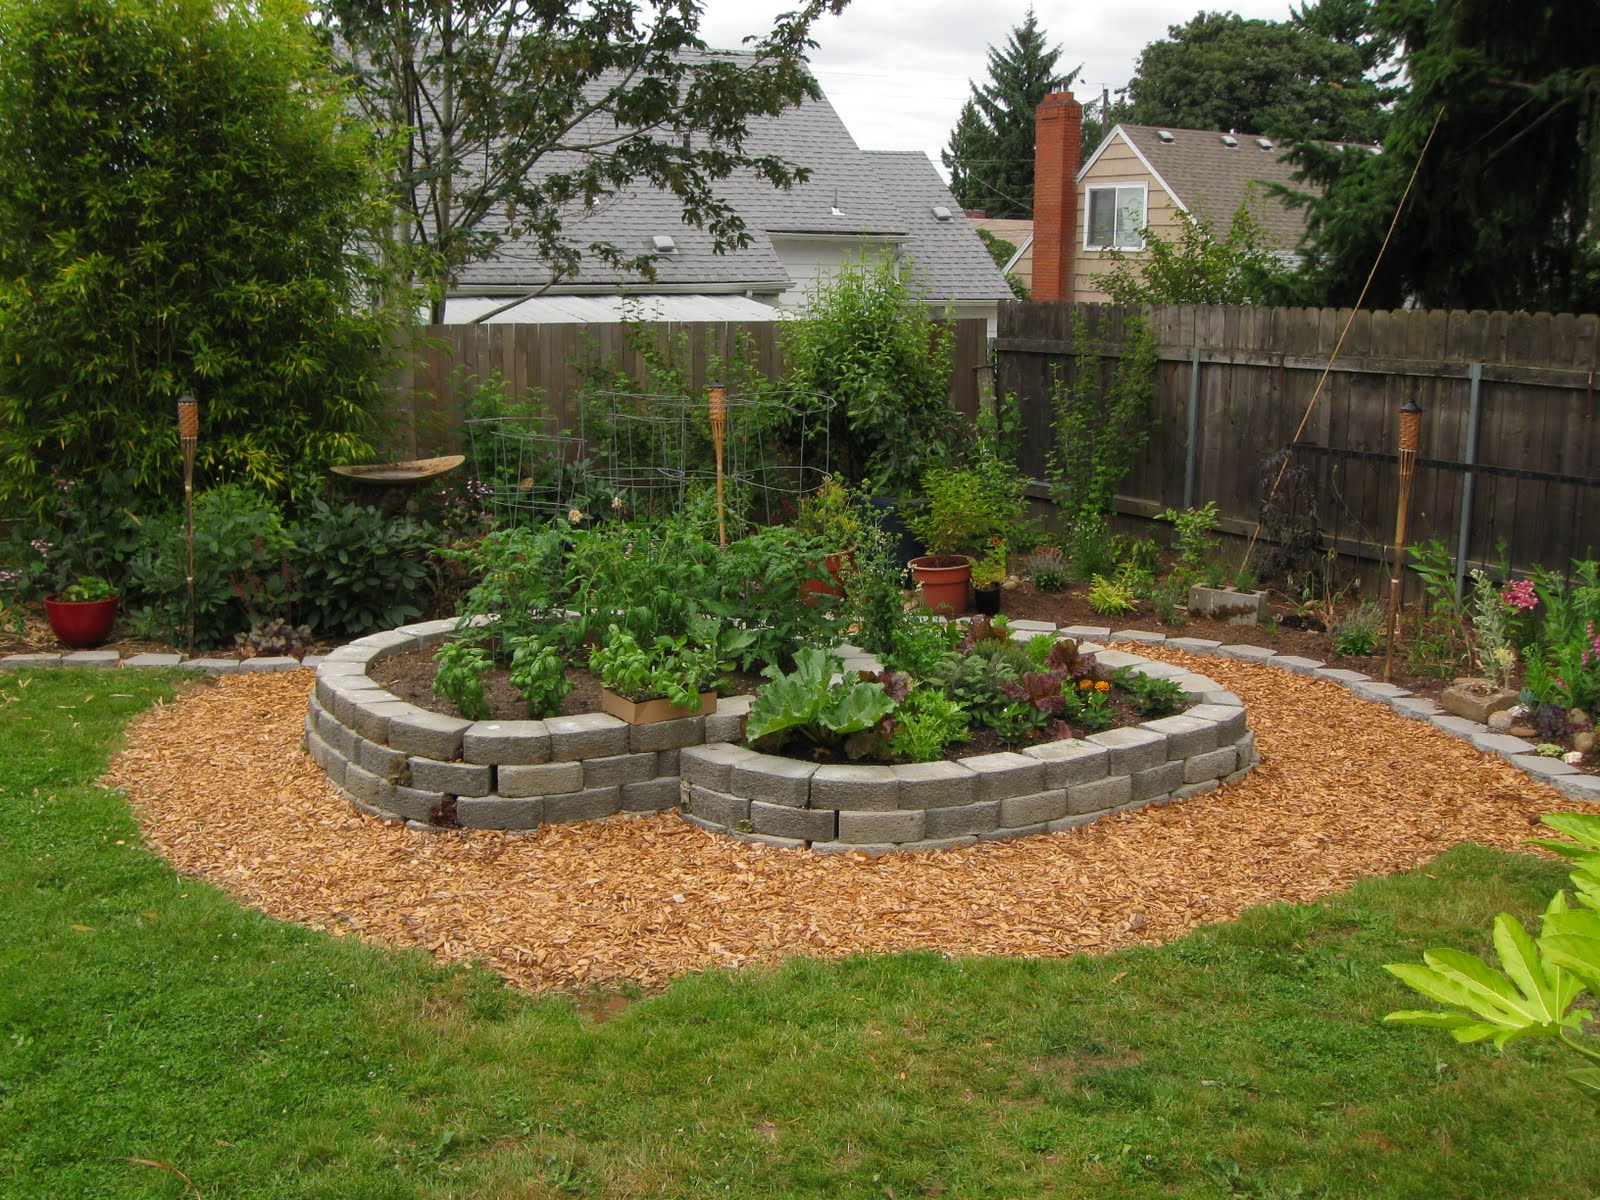 Simple landscape simple garden landscape design cadagucom for Simple garden design